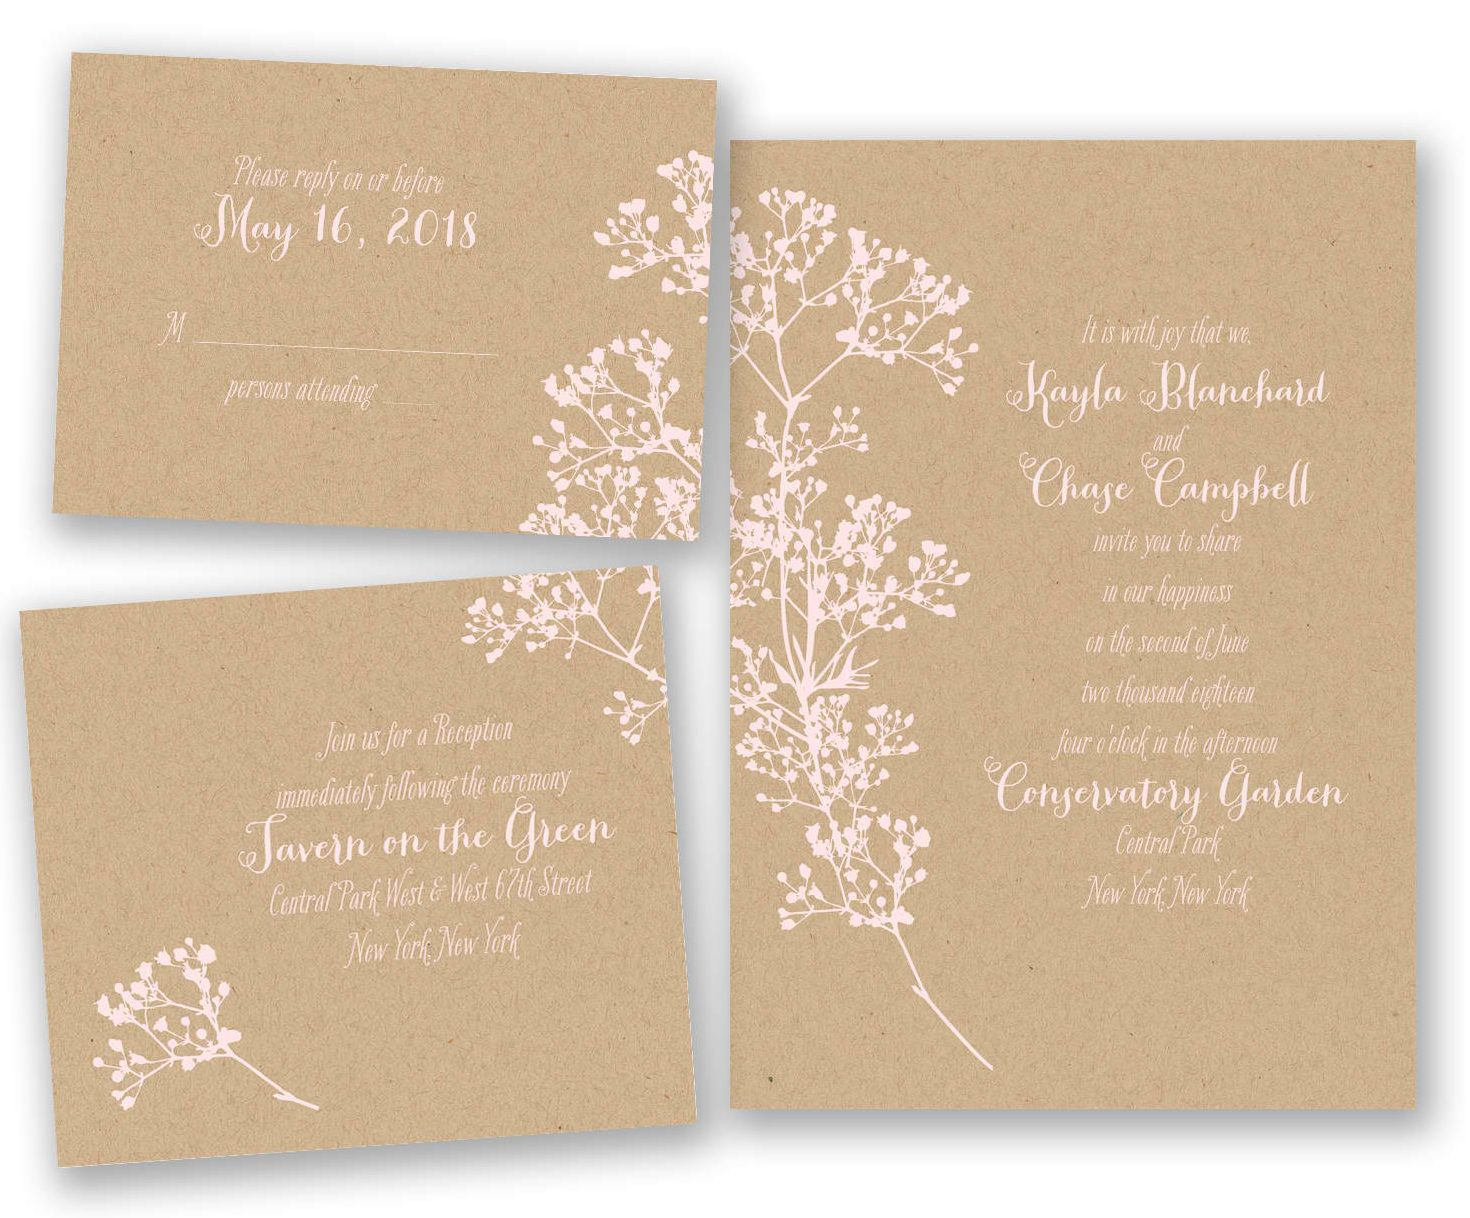 10 places to buy rustic theme wedding invitations vintagebash photo from httpinvitationsdavidsbridalwedding invitations naturerustic invitations 2947 db36119 delicate floral bundle basicpetalo monicamarmolfo Gallery